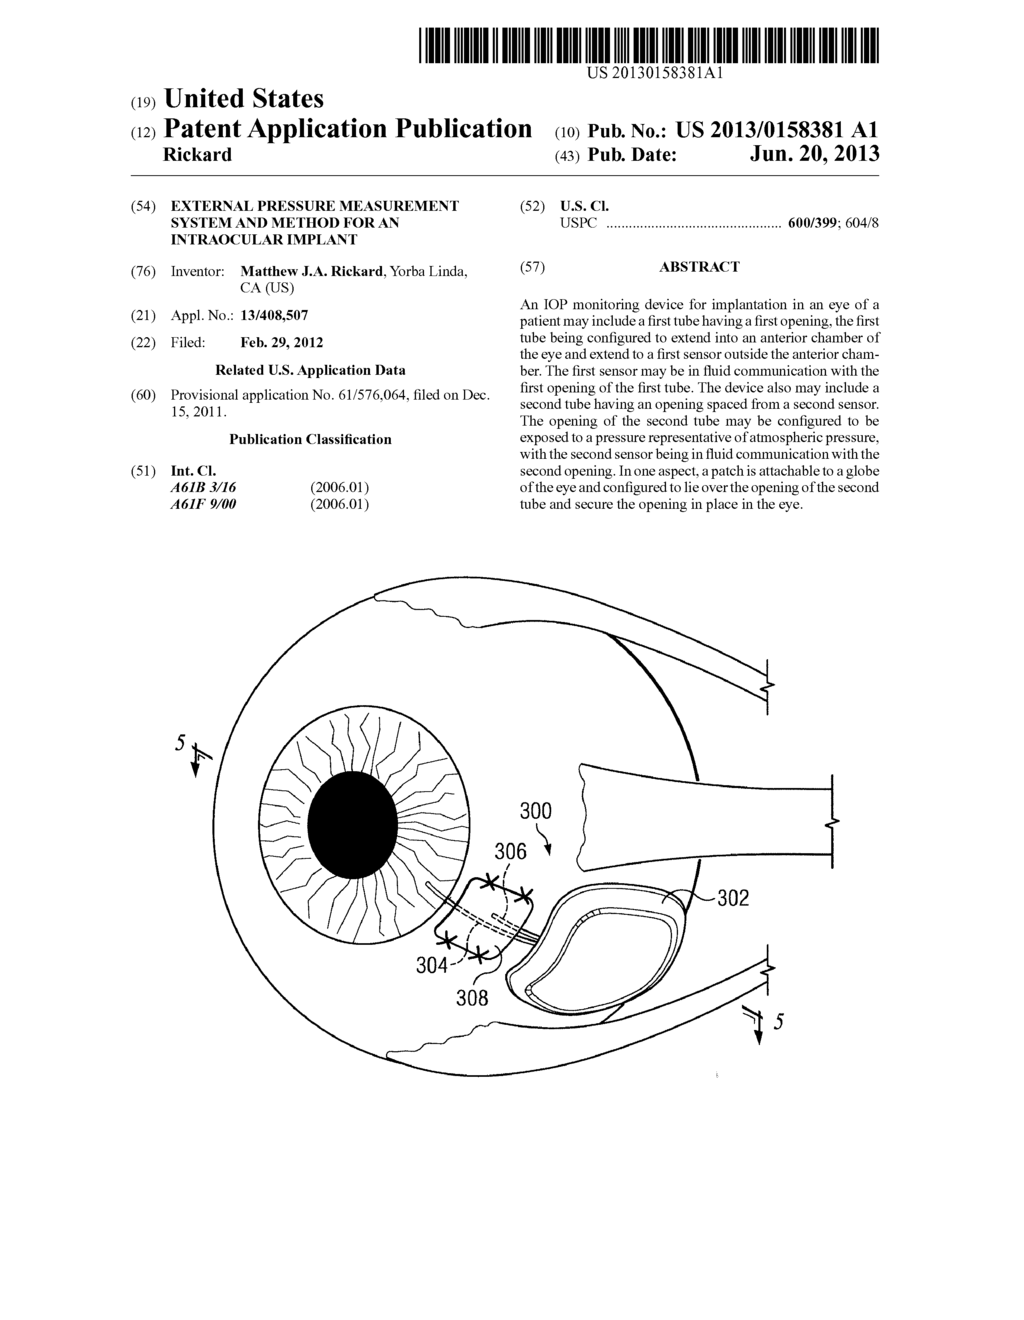 External Pressure Measurement System and Method for an Intraocular Implant - diagram, schematic, and image 01